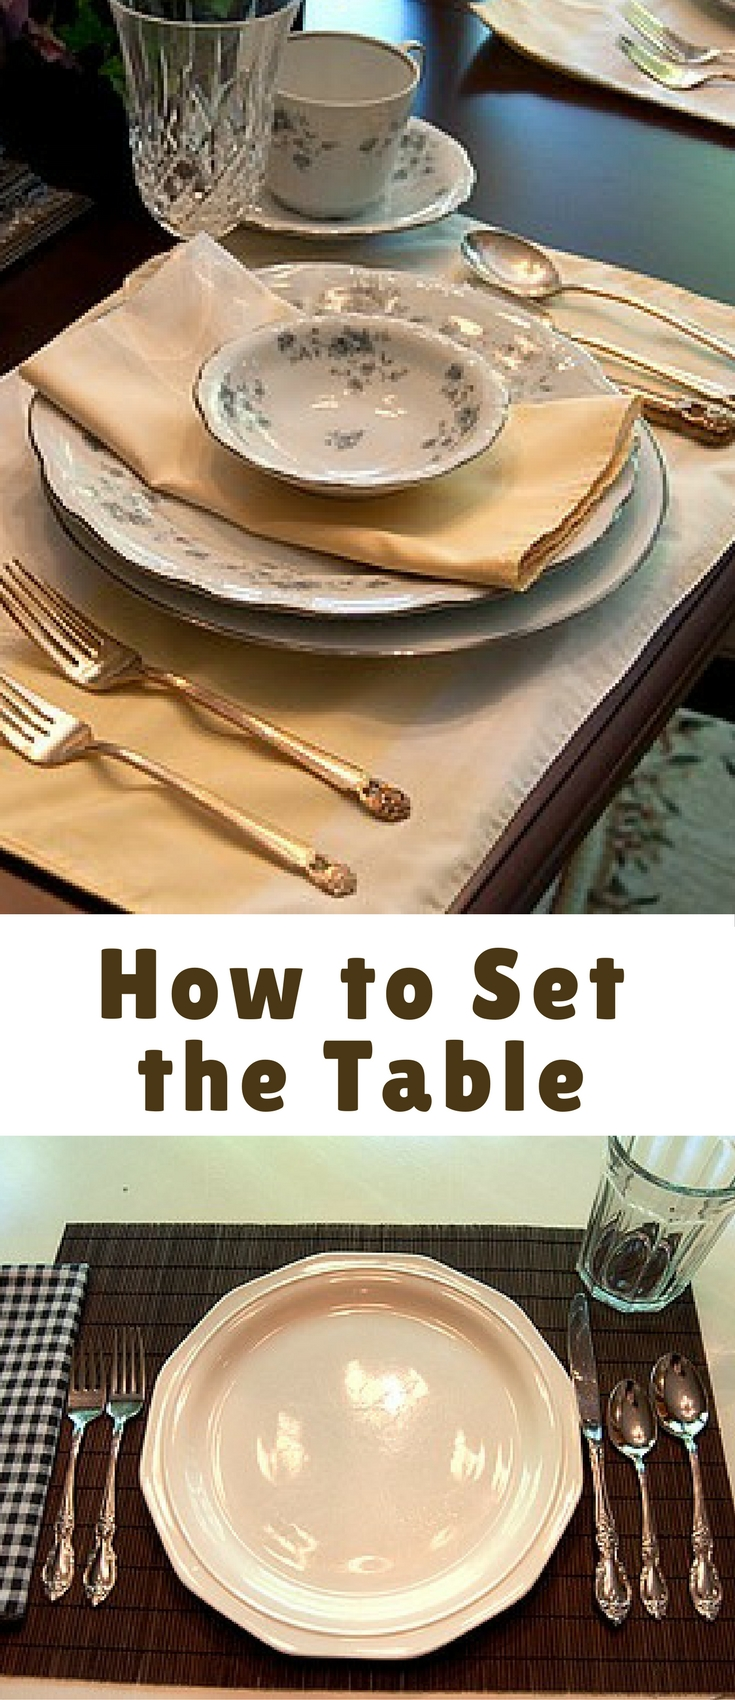 I have found that children do really enjoy setting the table. It becomes part of the mealtime ritual and helps them feel a part of the preparation. Even the smallest ones can help.